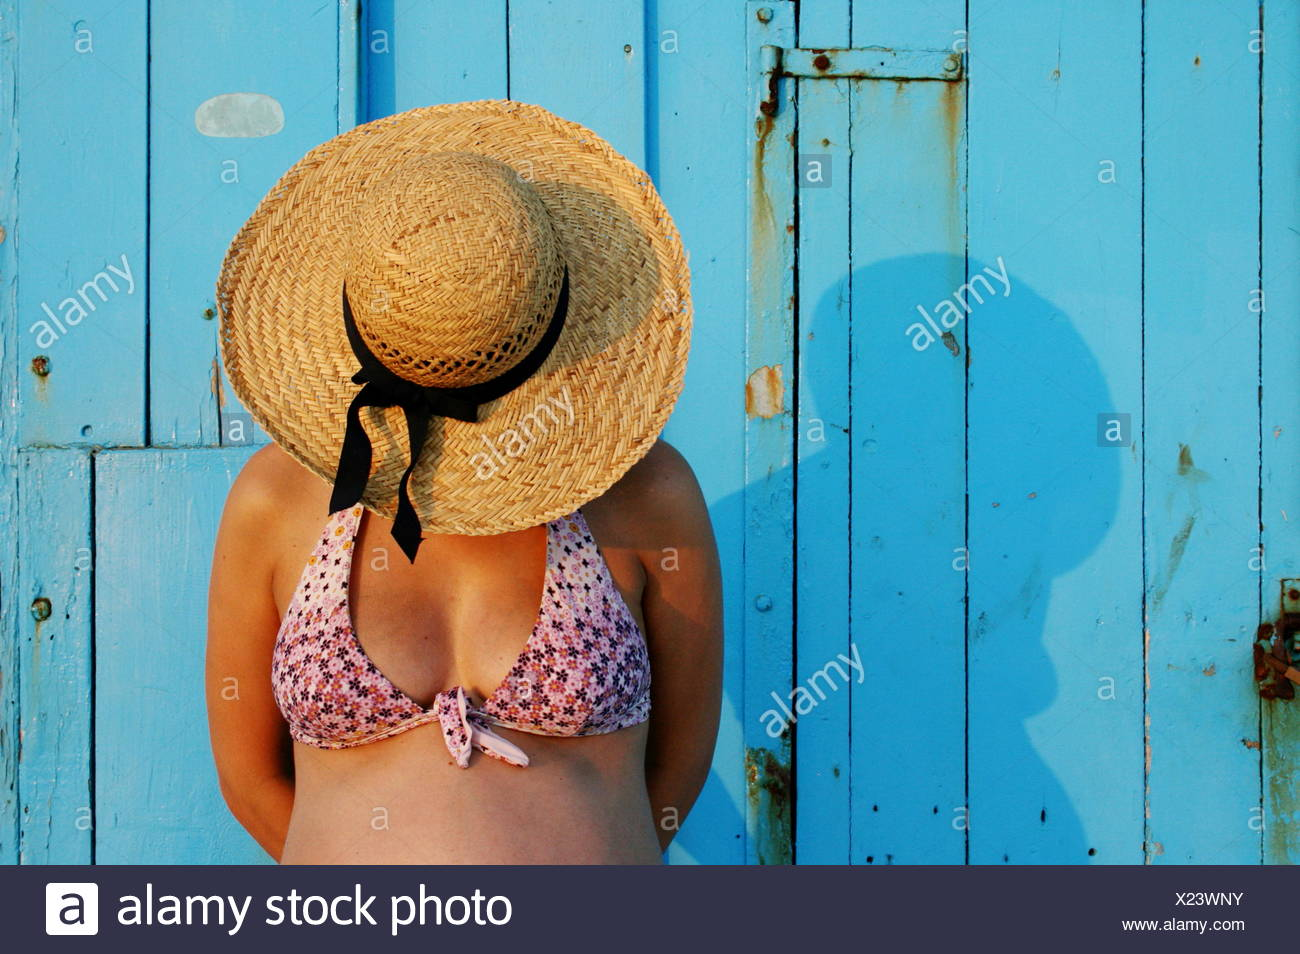 Pregnant woman wearing a straw hat - Stock Image